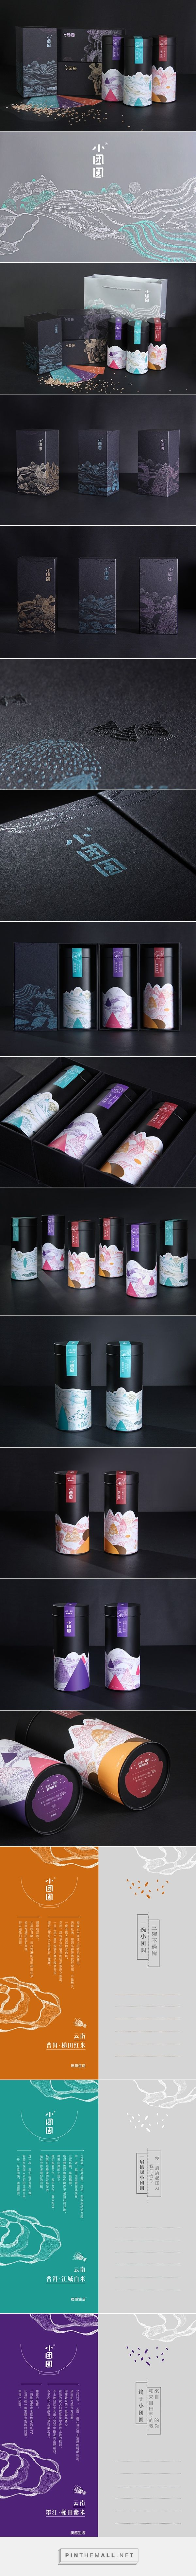 xiaotuanyuan on Behance designed by Yi Mi Xiaoxin curated by Packaging Diva PD…